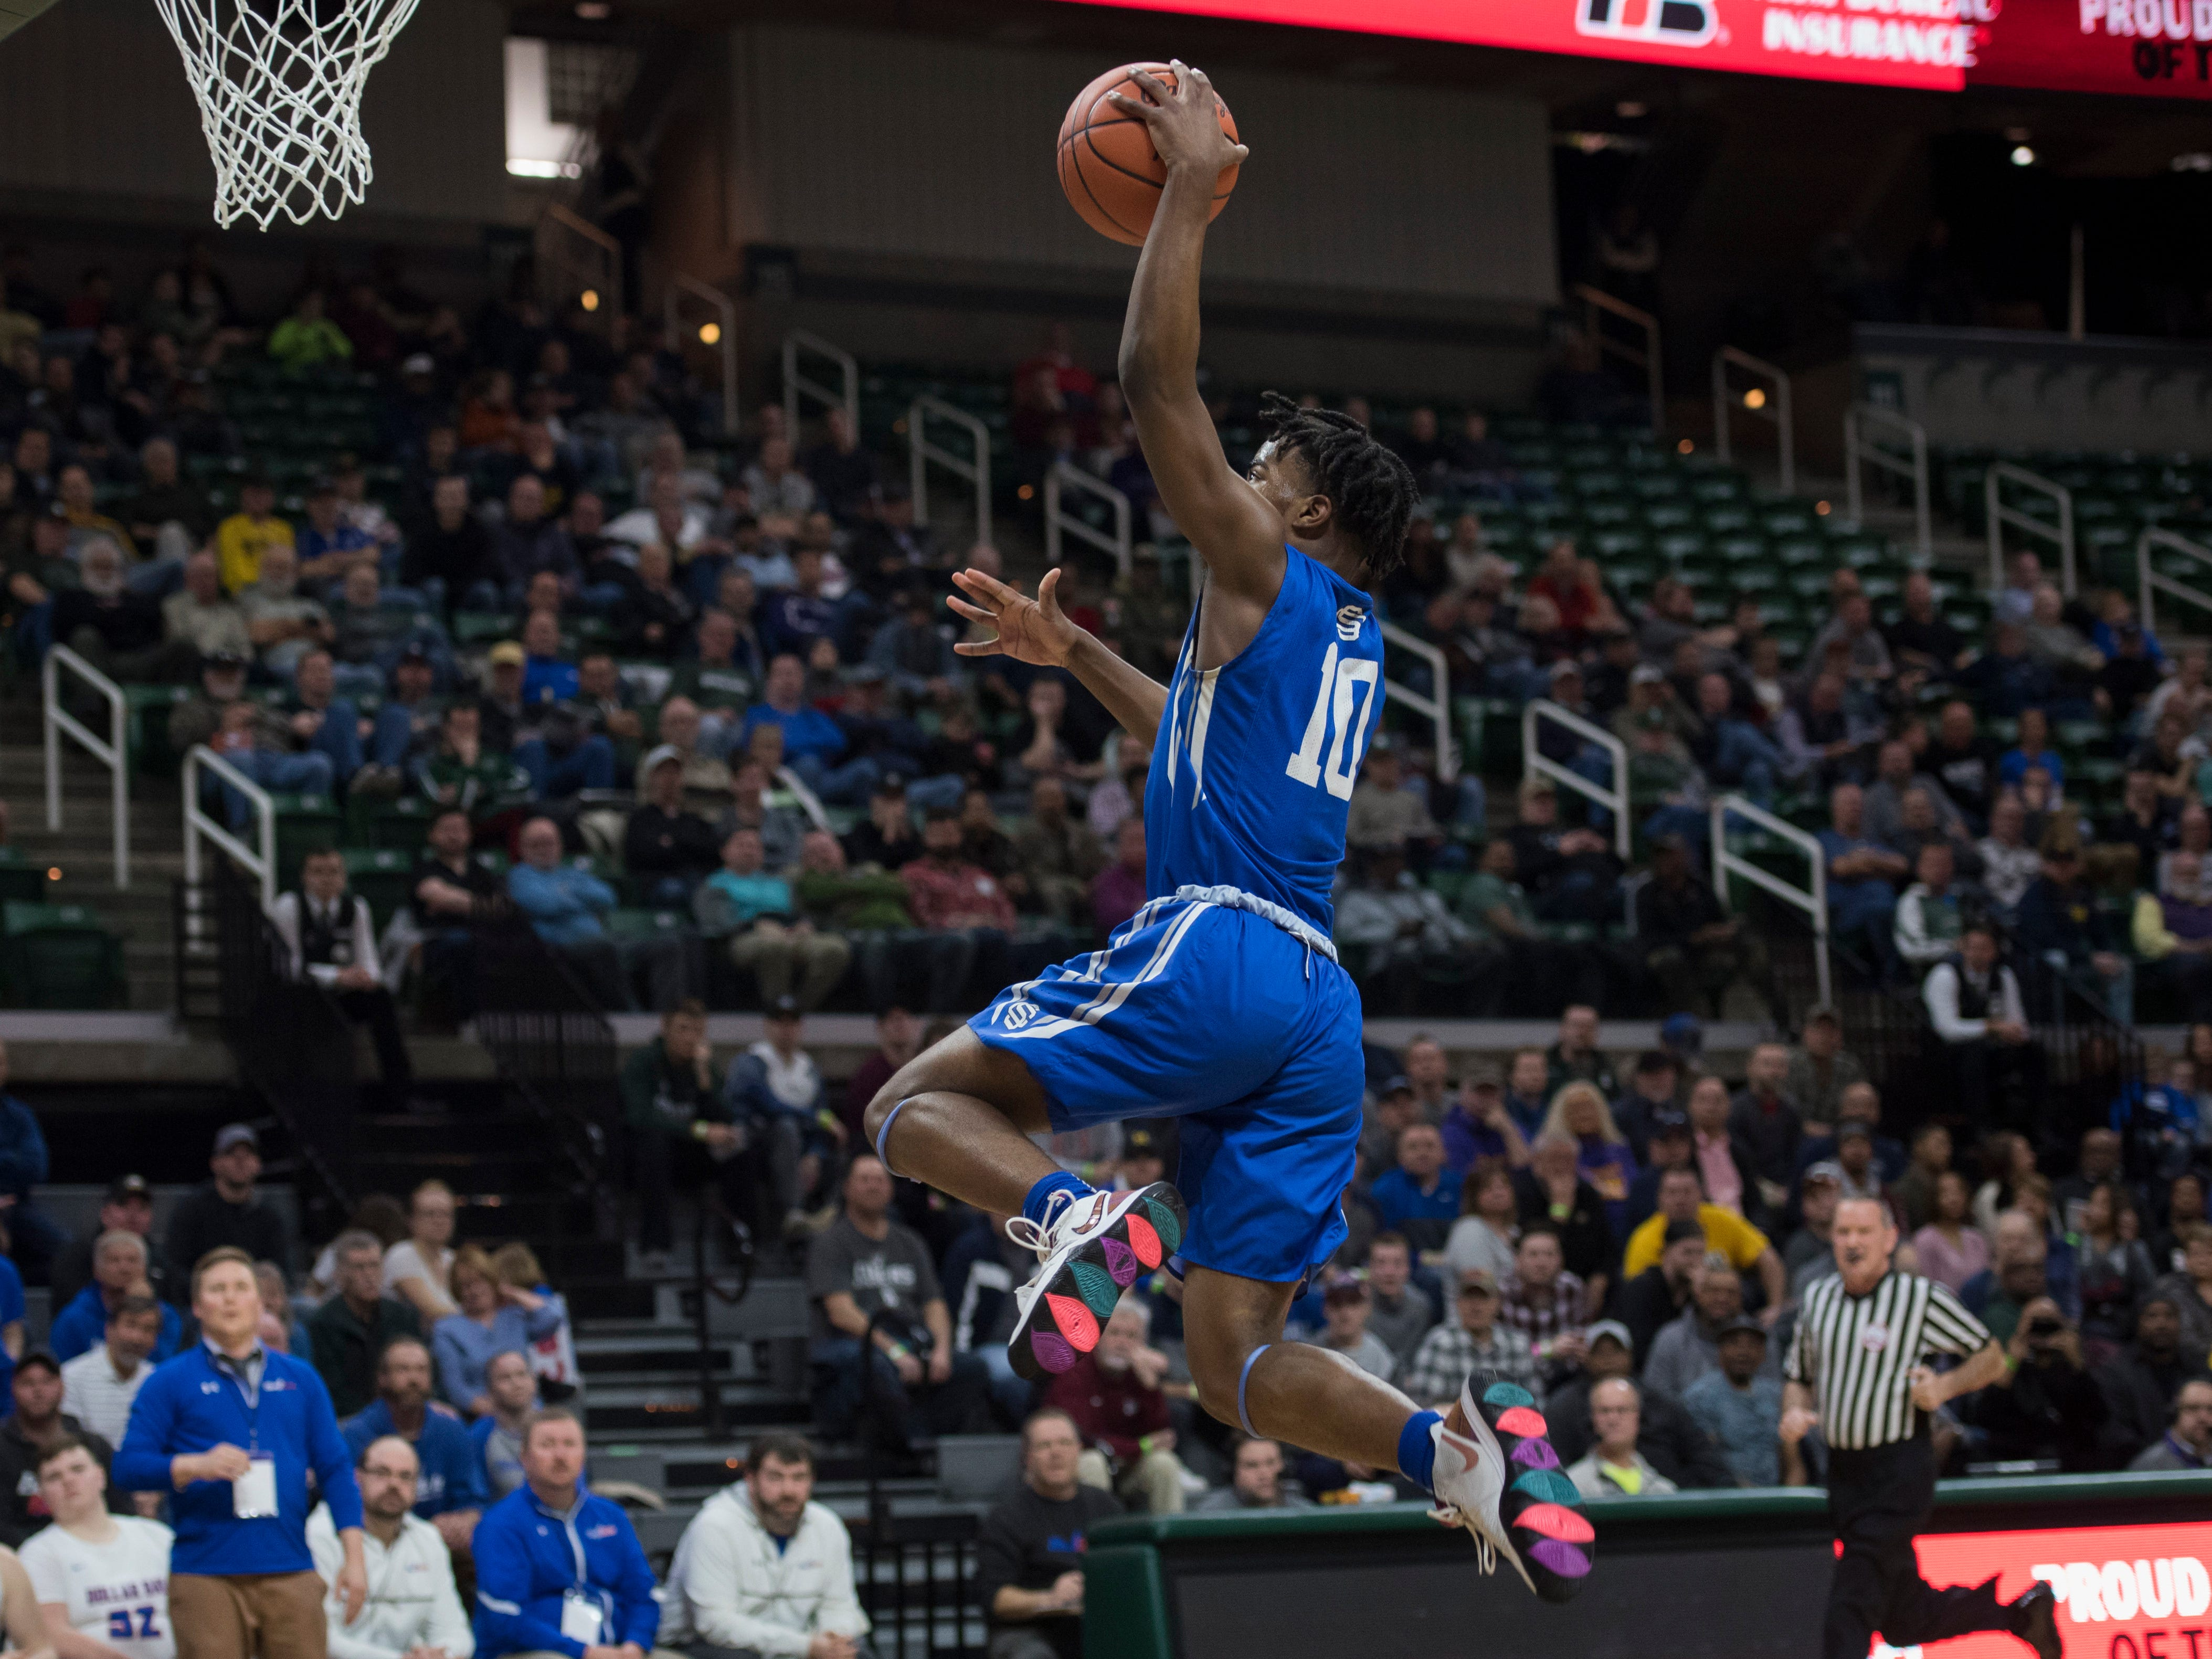 Southfield Christian's Jon Sanders shoots a layup in the first half.